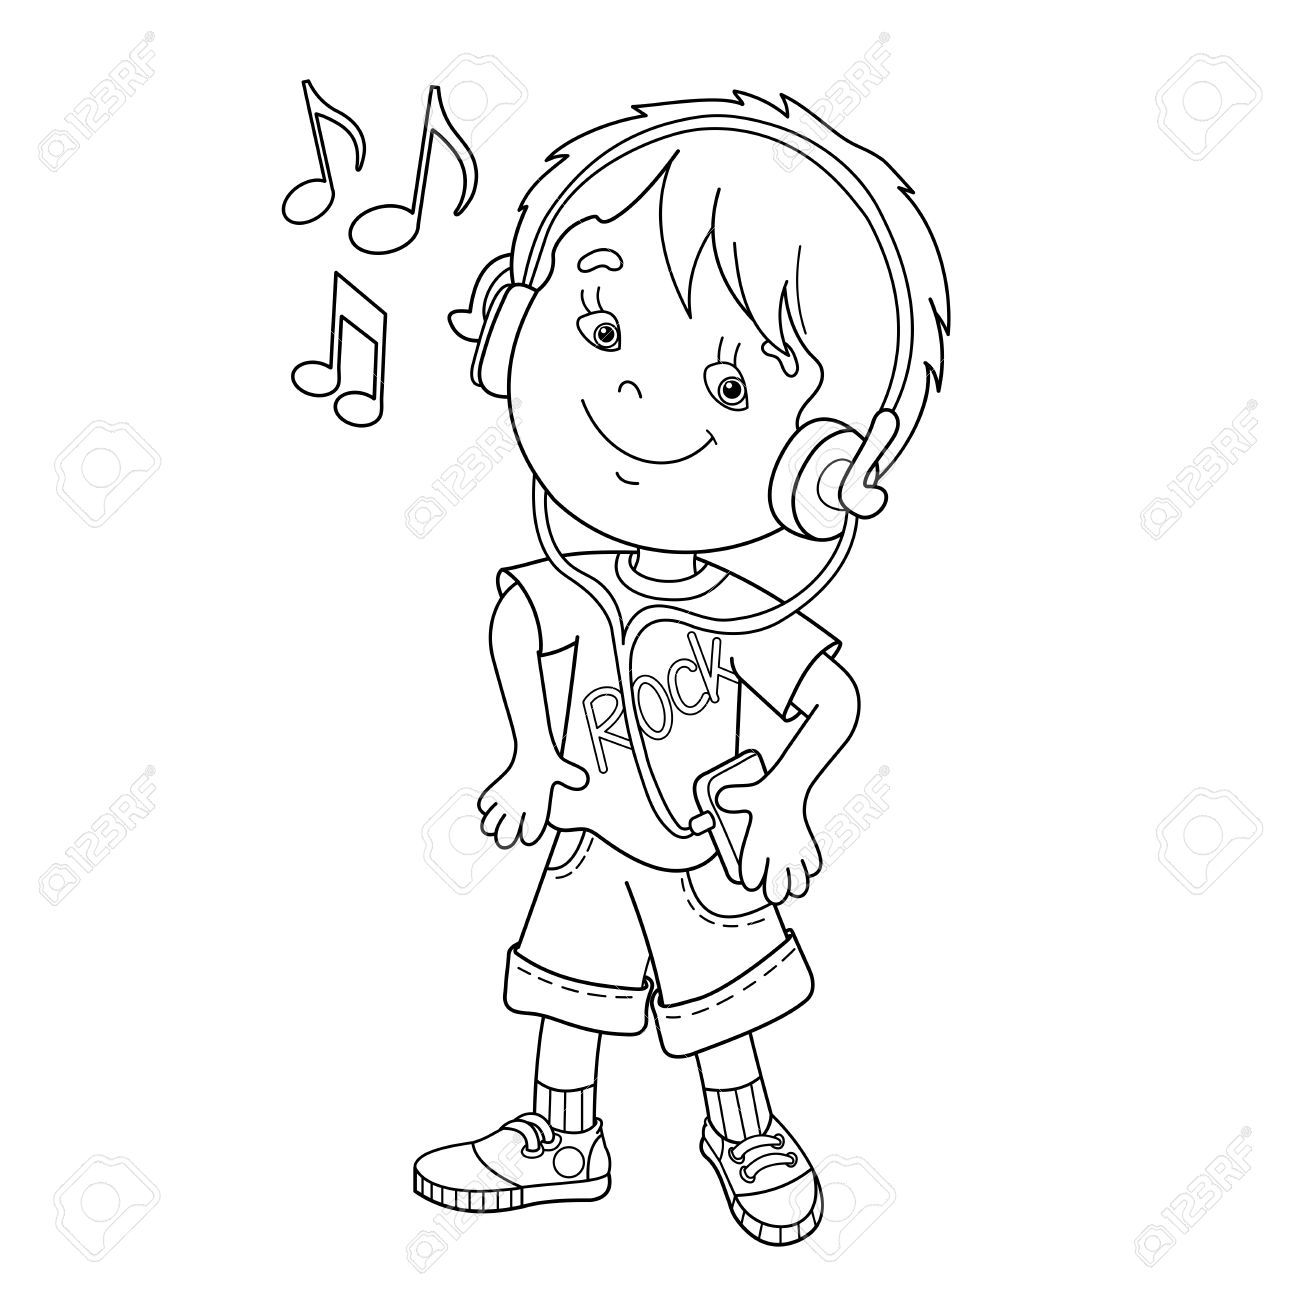 Coloring Page Outline Of Cartoon Boy In Headphones Listening ...